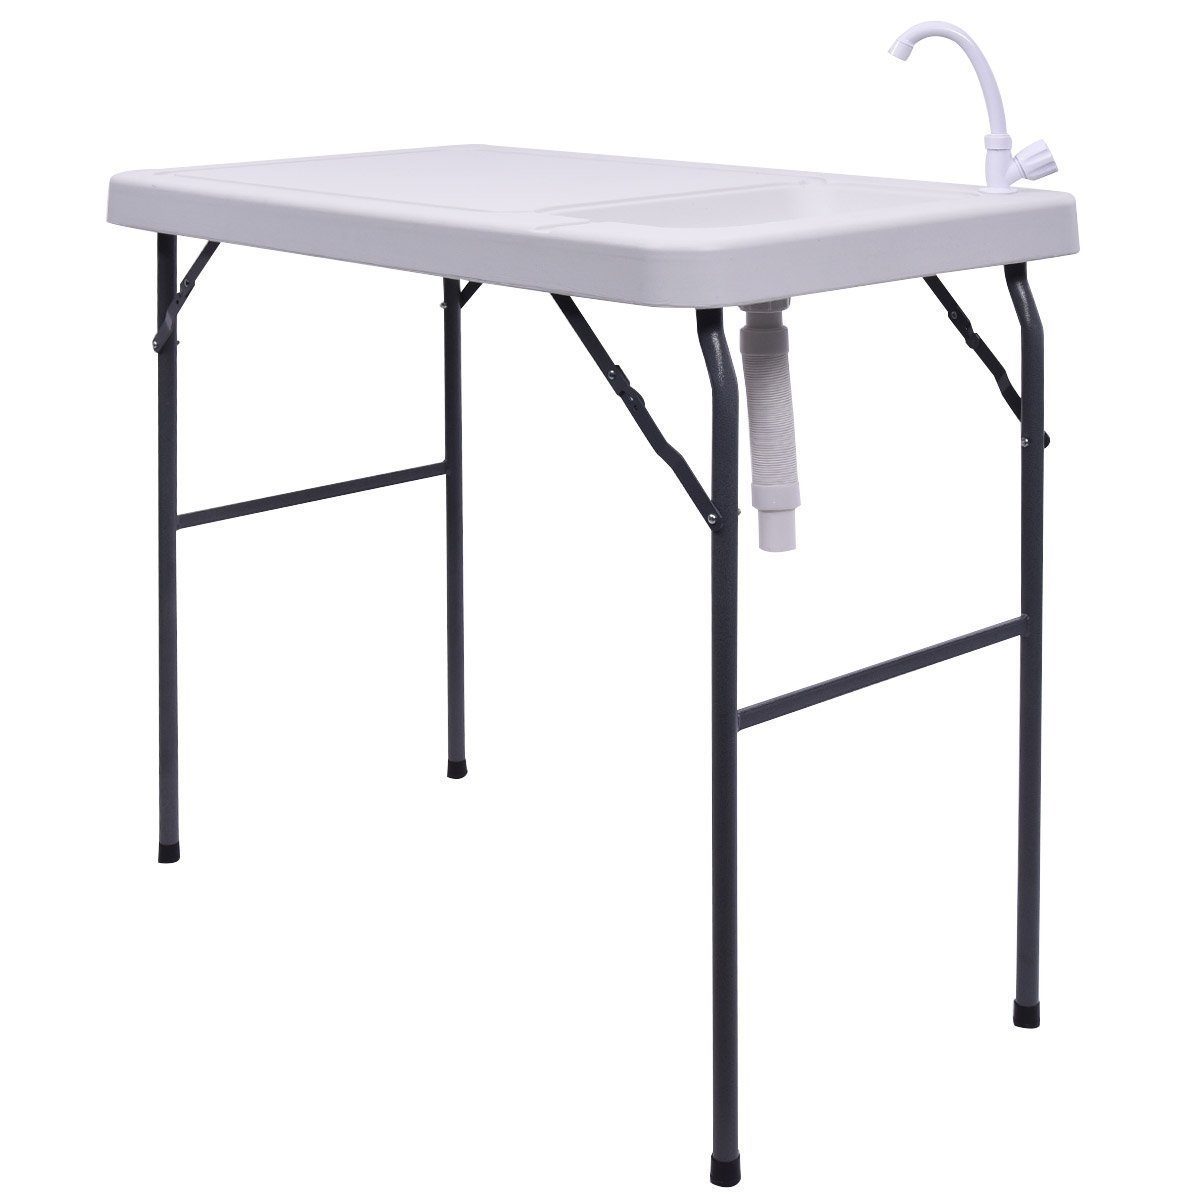 Goplus Folding Table With Sink